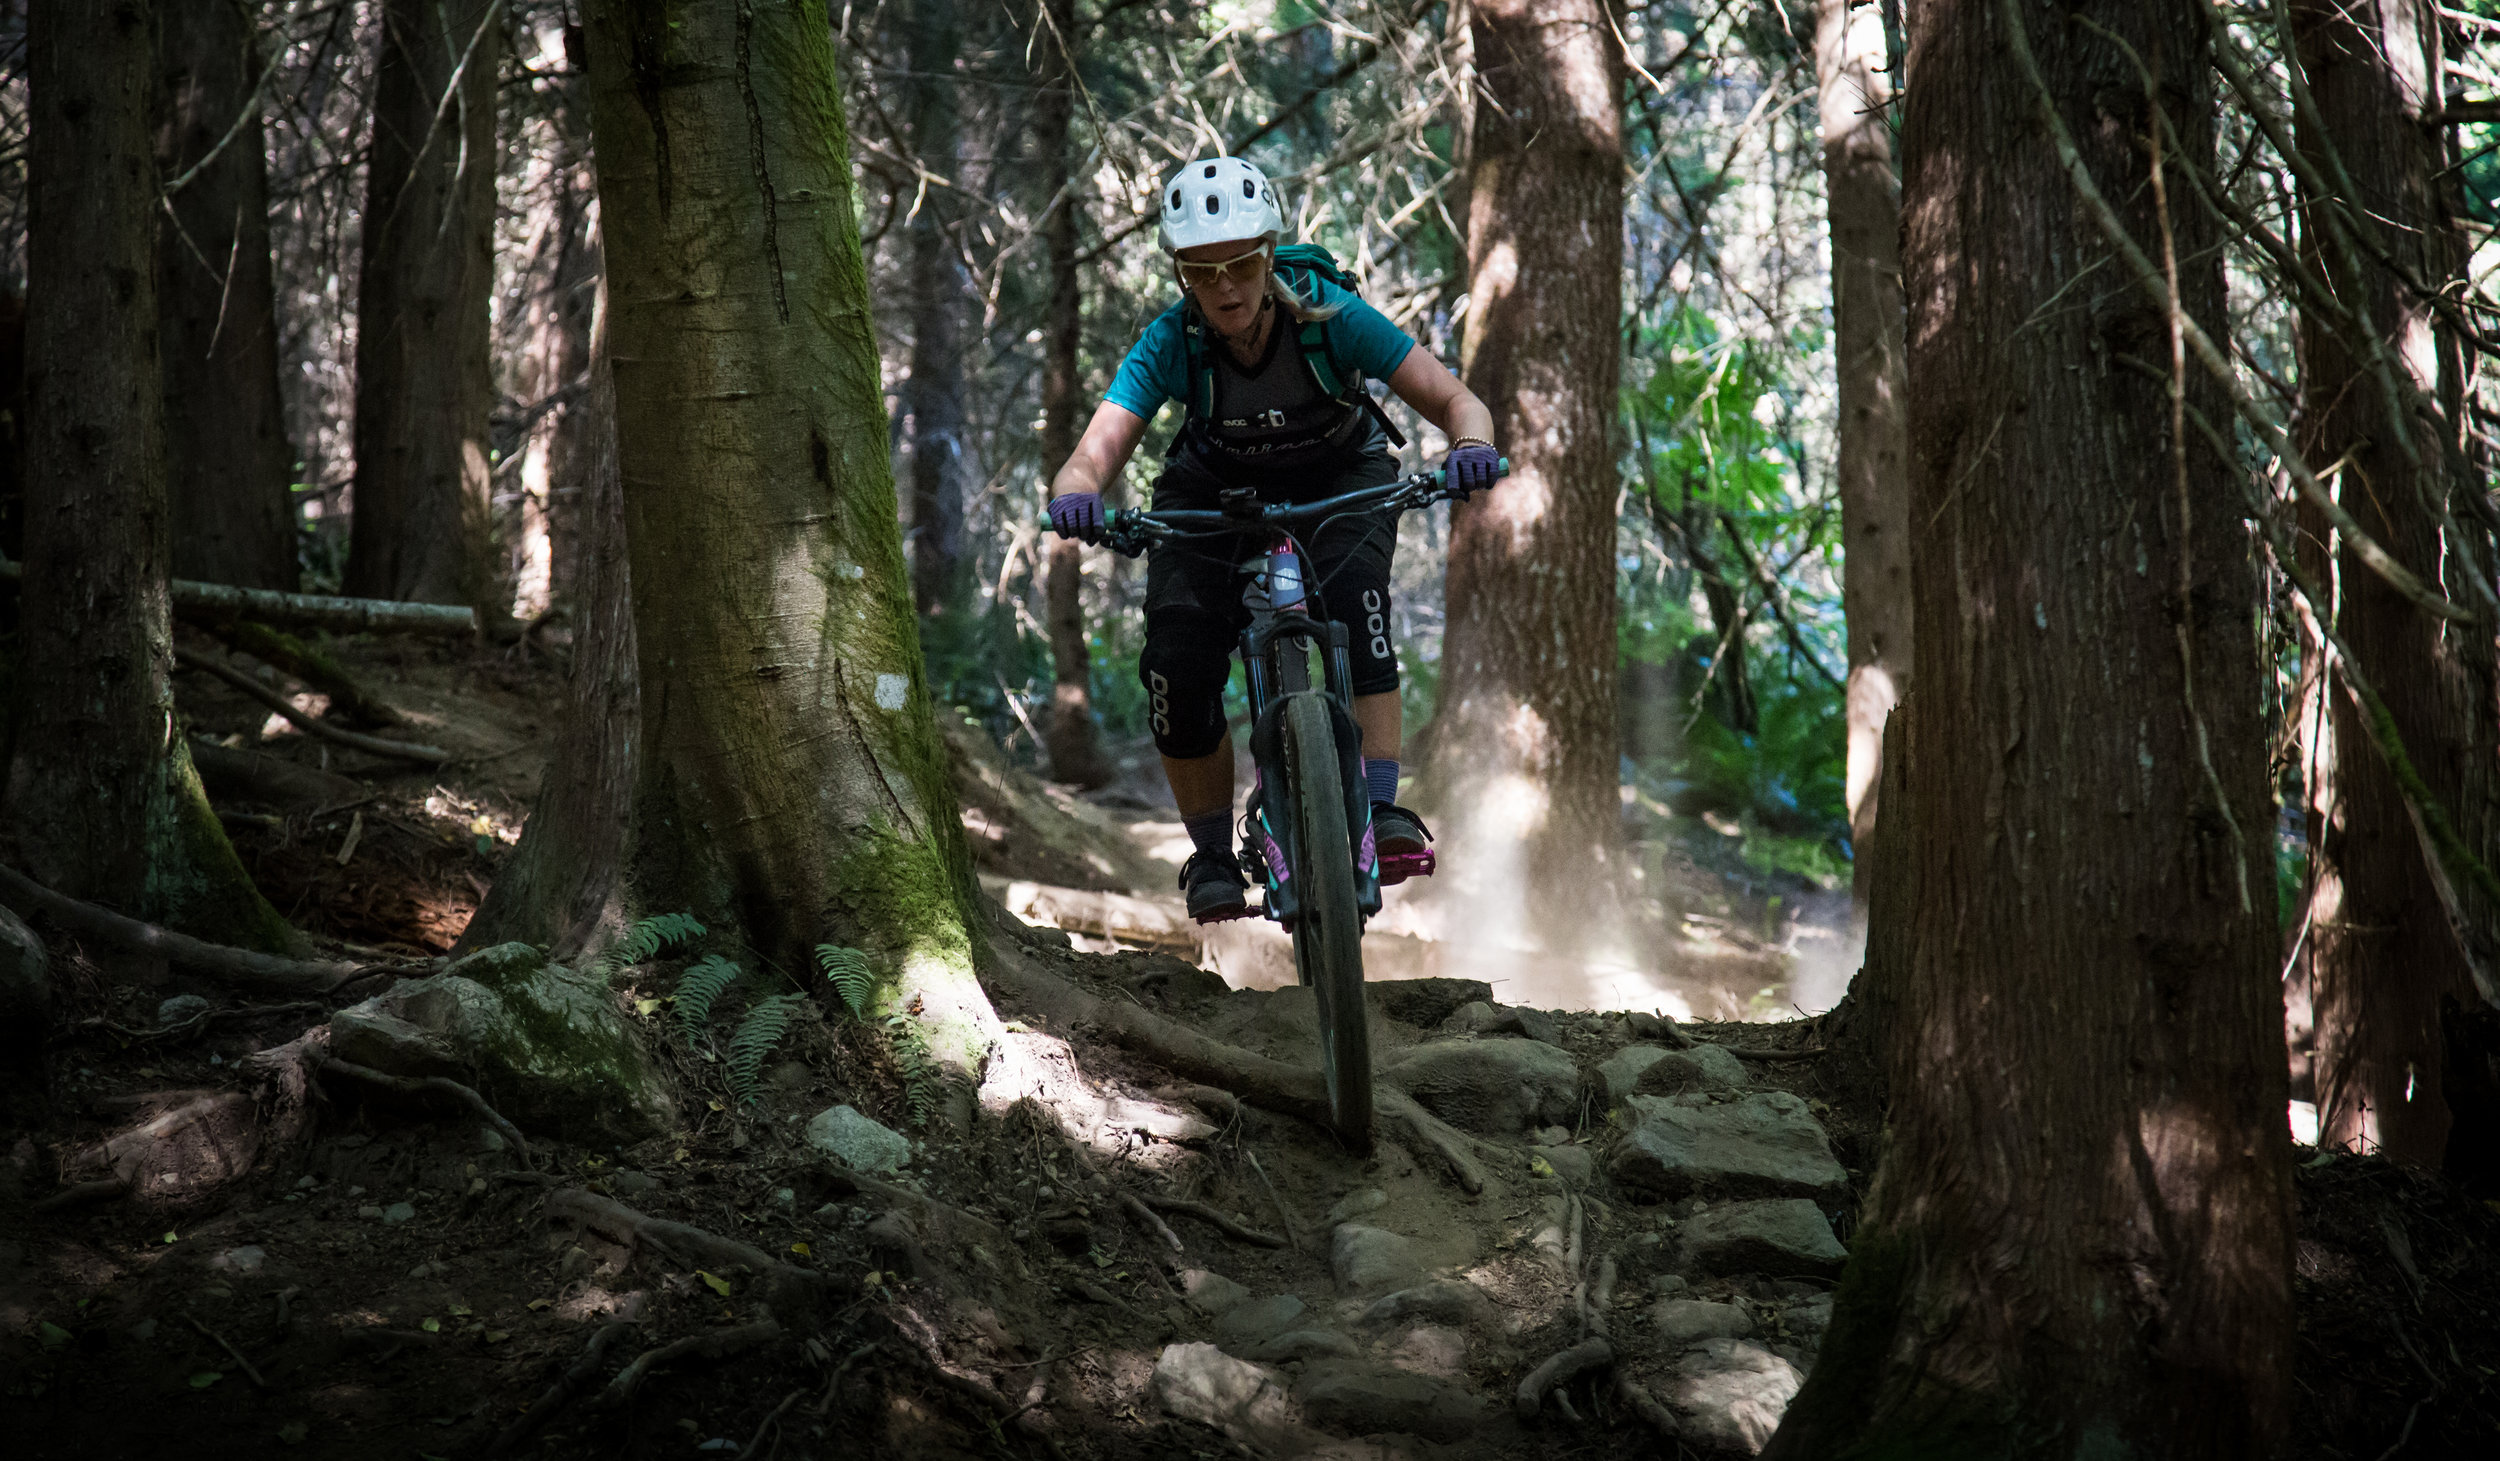 Navigating steep, rocky and rooty terrain is made to look easy by this girl...